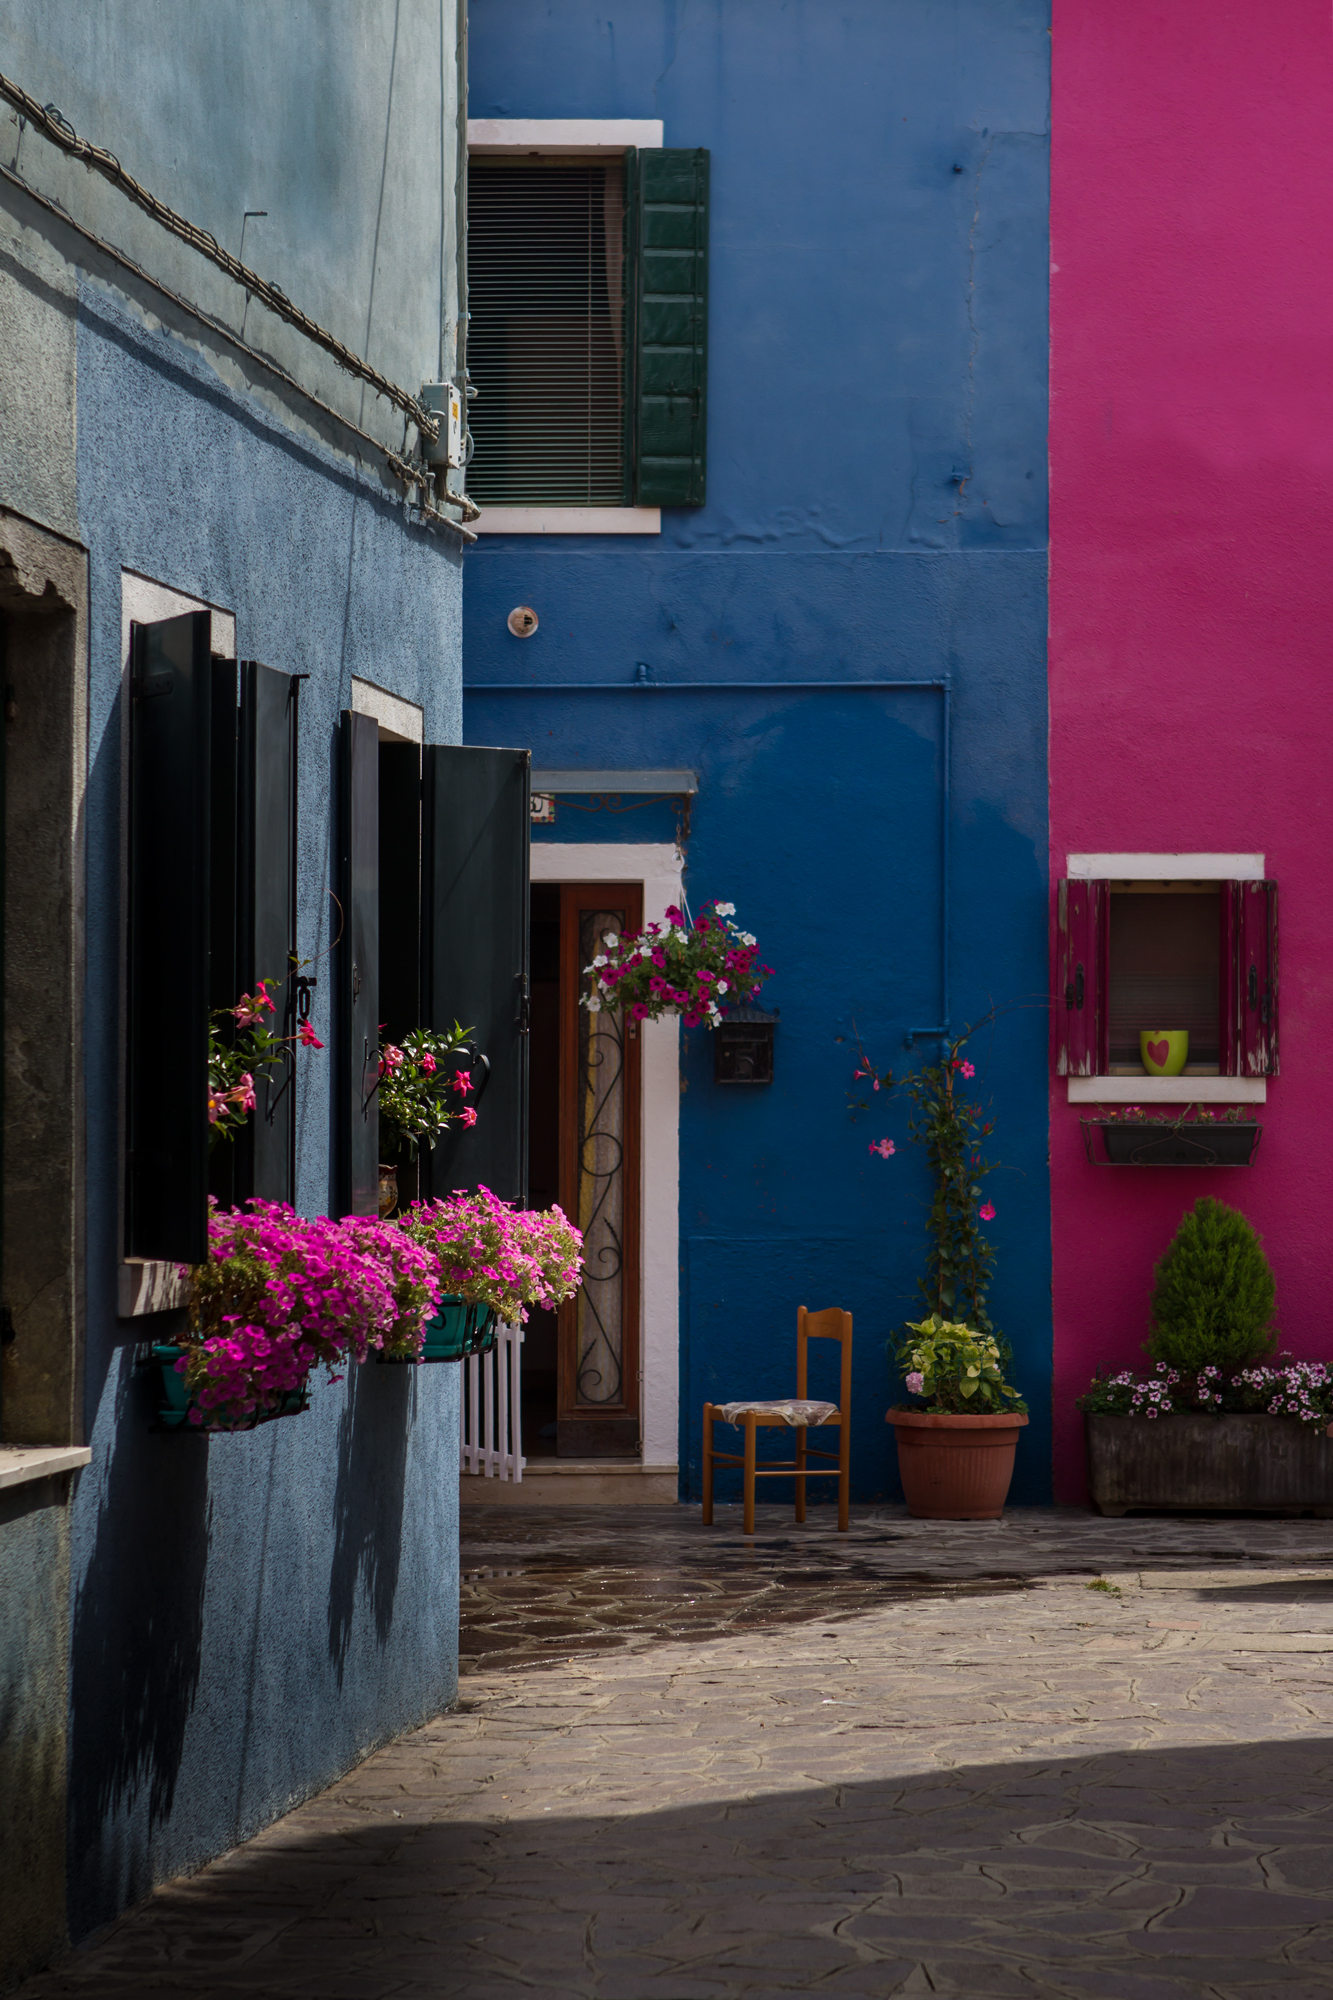 Burano (2), Italy by sir20